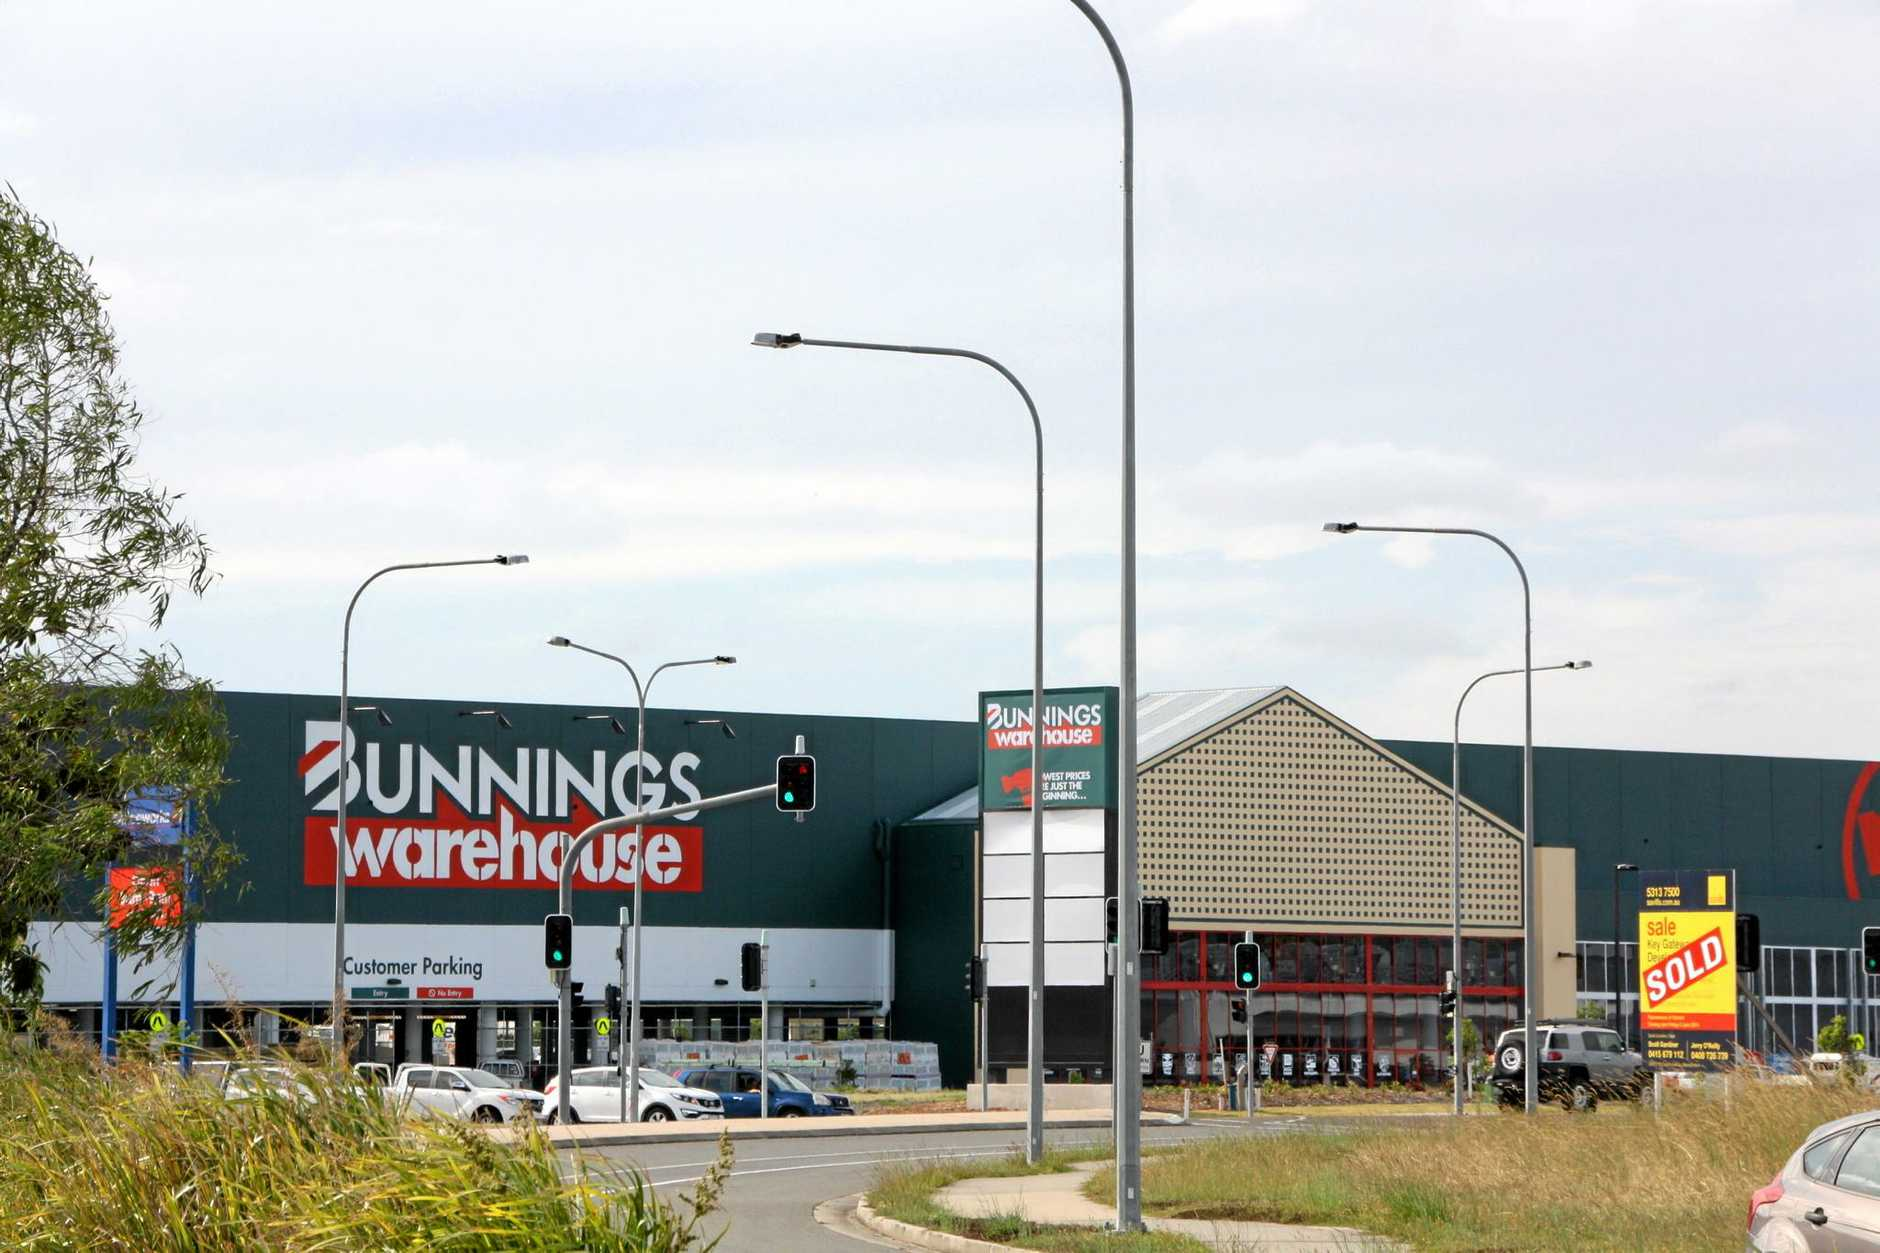 THIRD GO: Bunnings is proceeding with a third application for a complex at Coolum. The proposed 5650sq m warehouse would be about 70% of the size of the store which opened at Maroochydore late last year.